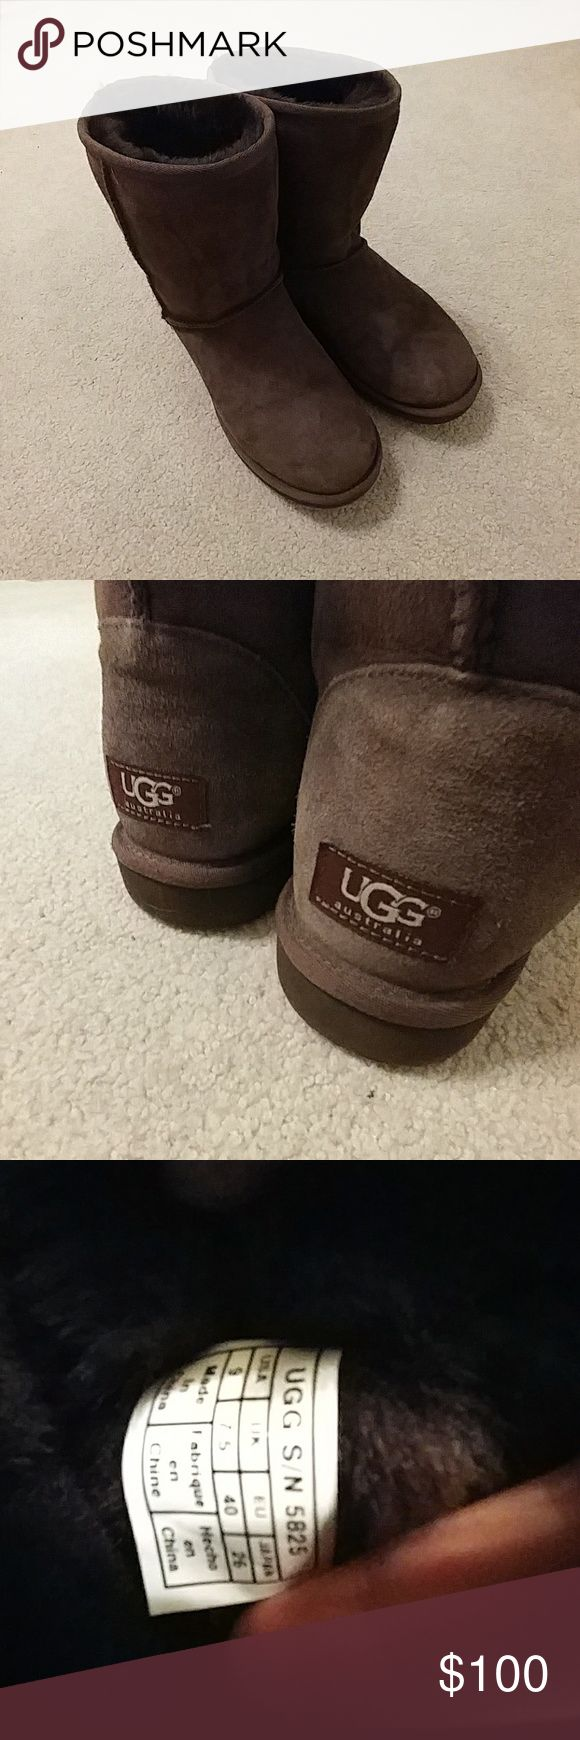 Women's UGG II SHORT CHOCOLATE Chocolate brown UGG boots. Great condition with toe creases. No stains or marks. UGG Shoes